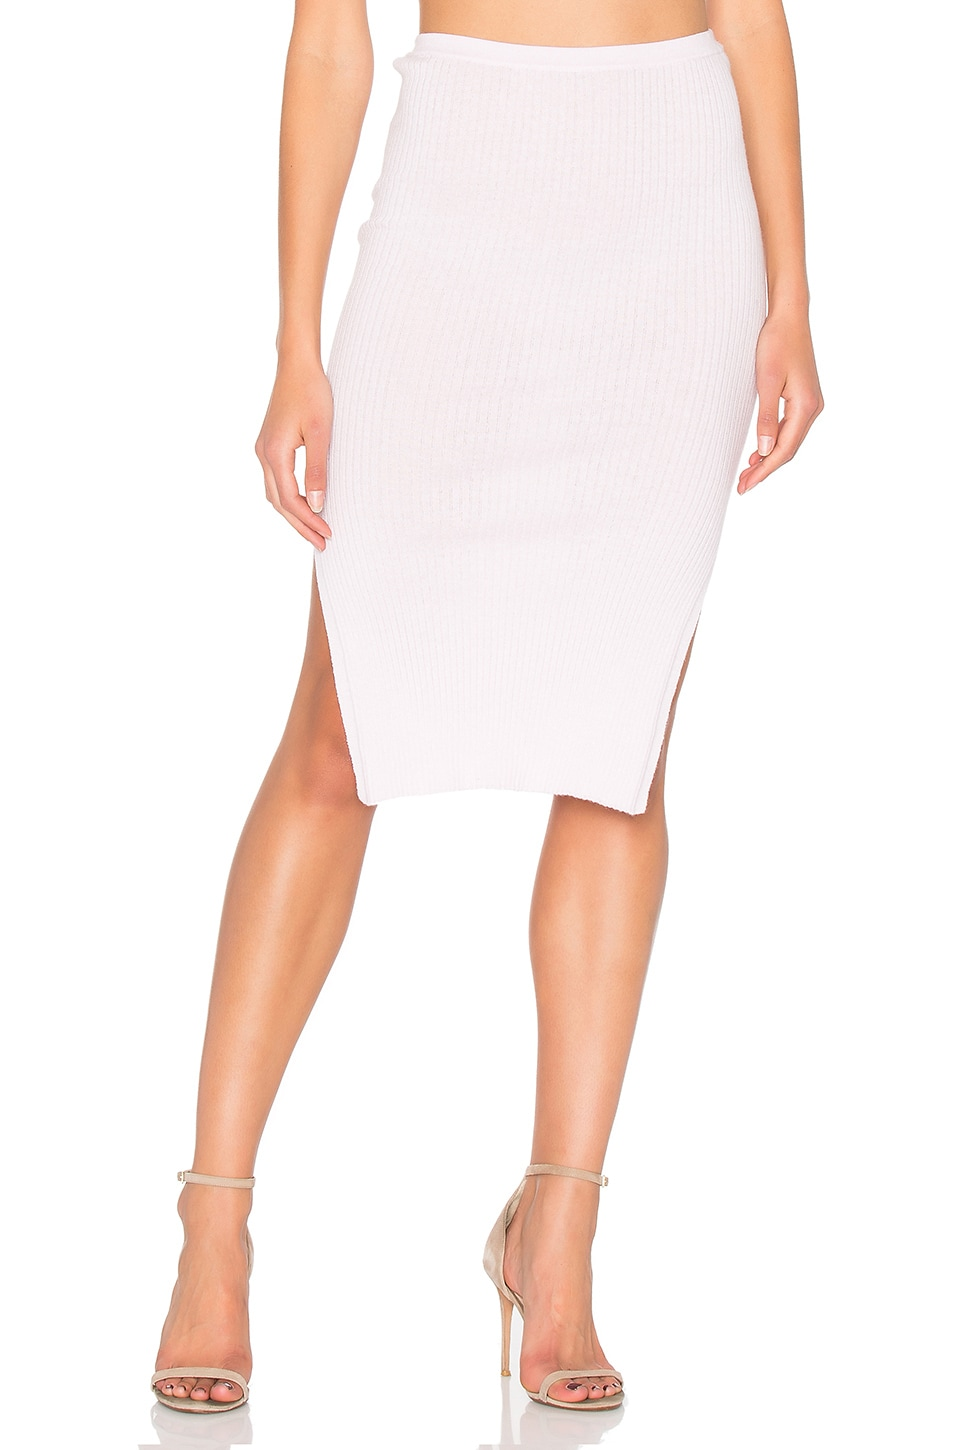 360CASHMERE x Hanna Beth Manuela Skirt in Powder Puff